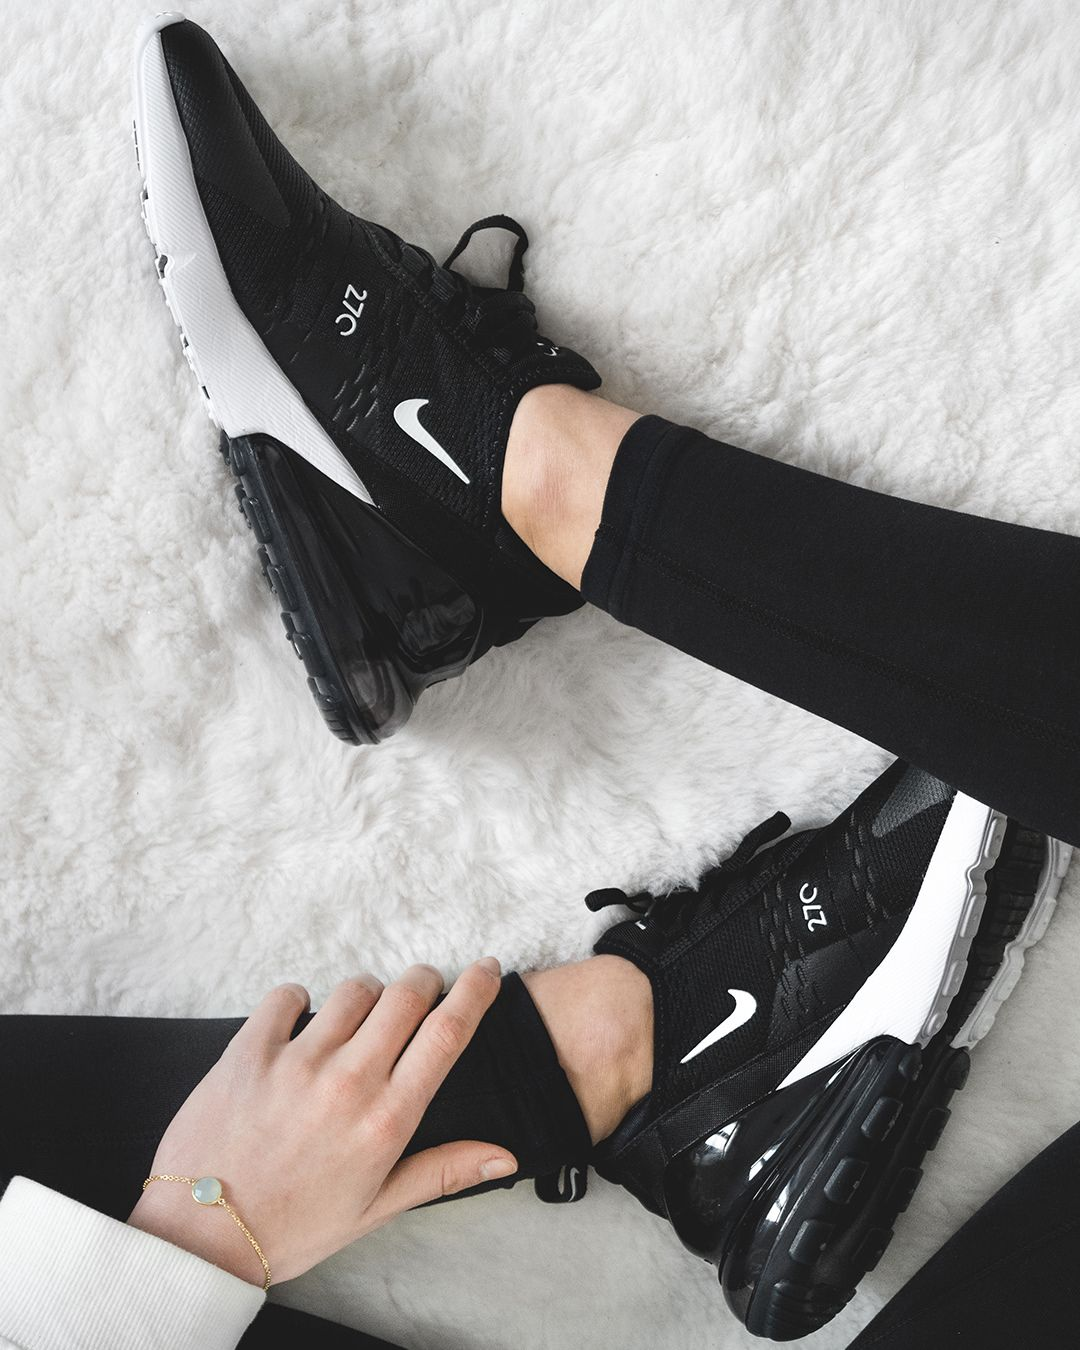 san francisco 1226d 45d89 Nike Air Max 270. | 《Cool Stuff》 in 2019 | Sneakers nike ...